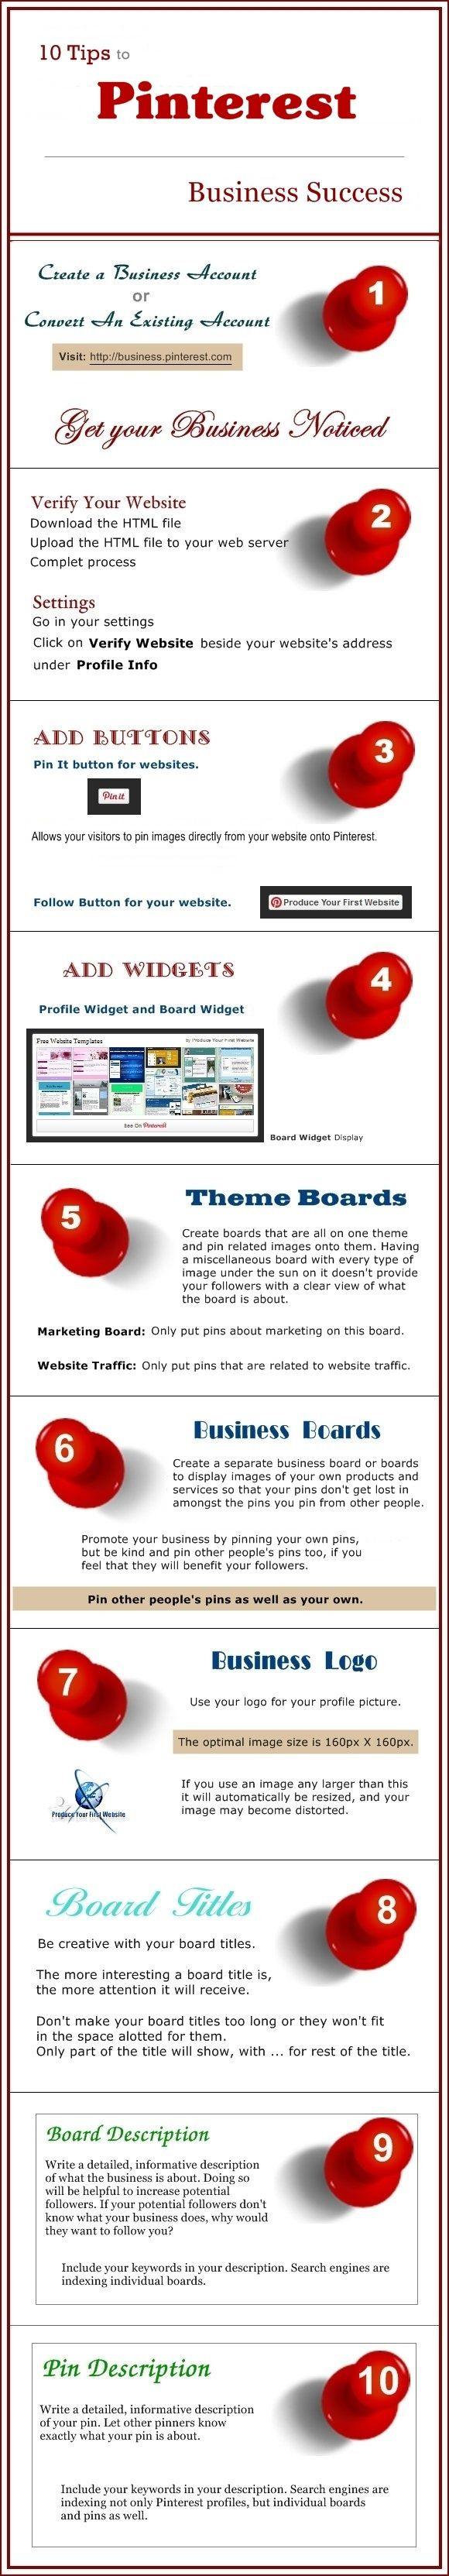 10 Tips To Pinterest Business Success #infographic #Marketing #Pinterest